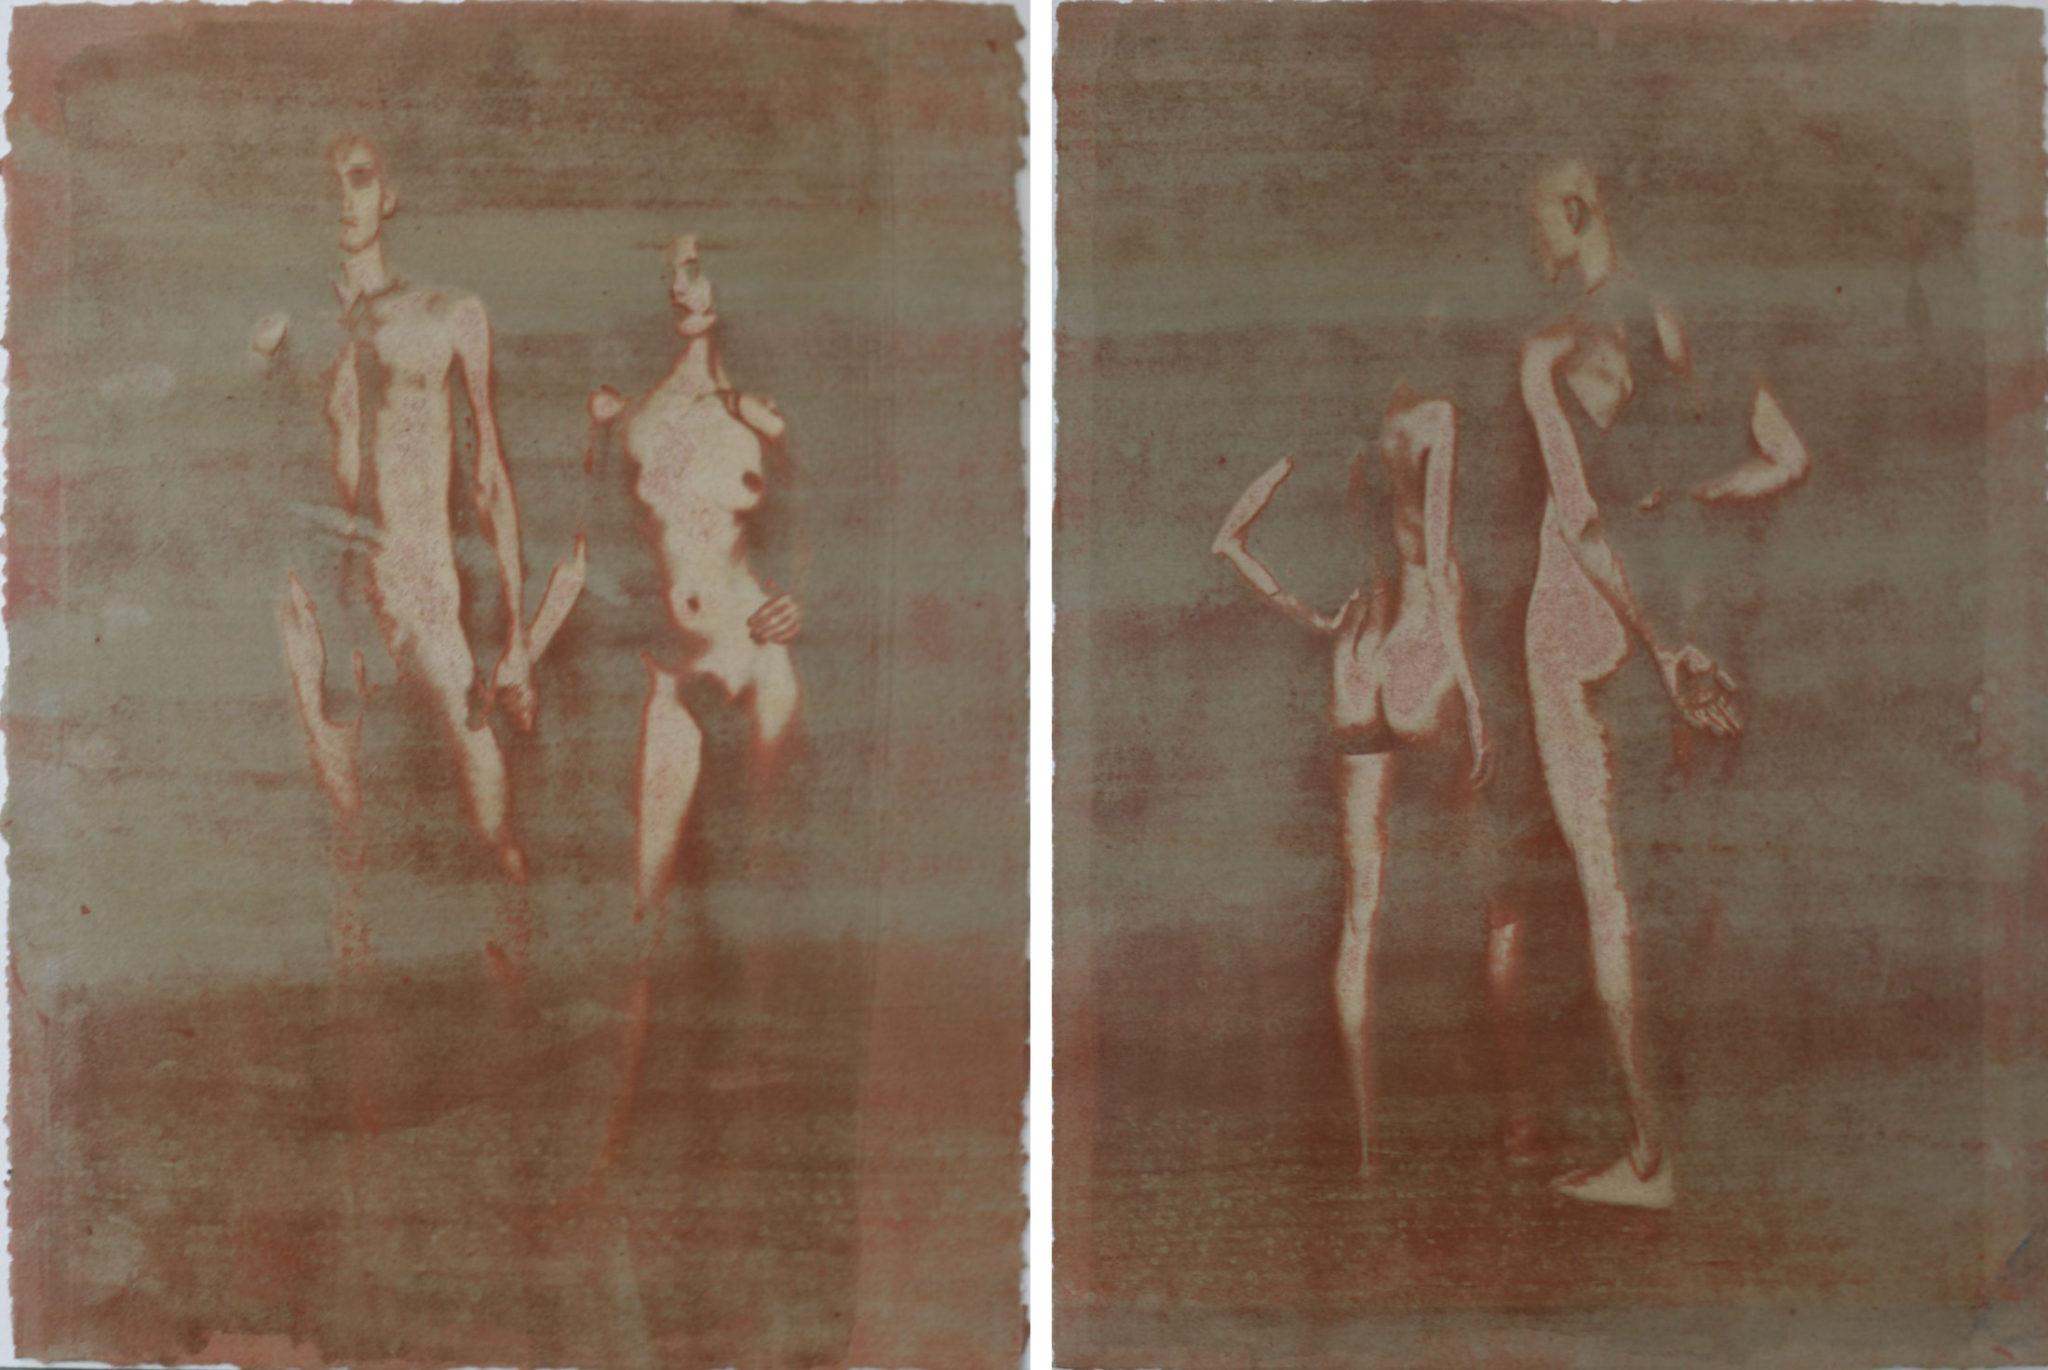 Igor Vishnyakov_11x15 Diptych on paper, contemporary